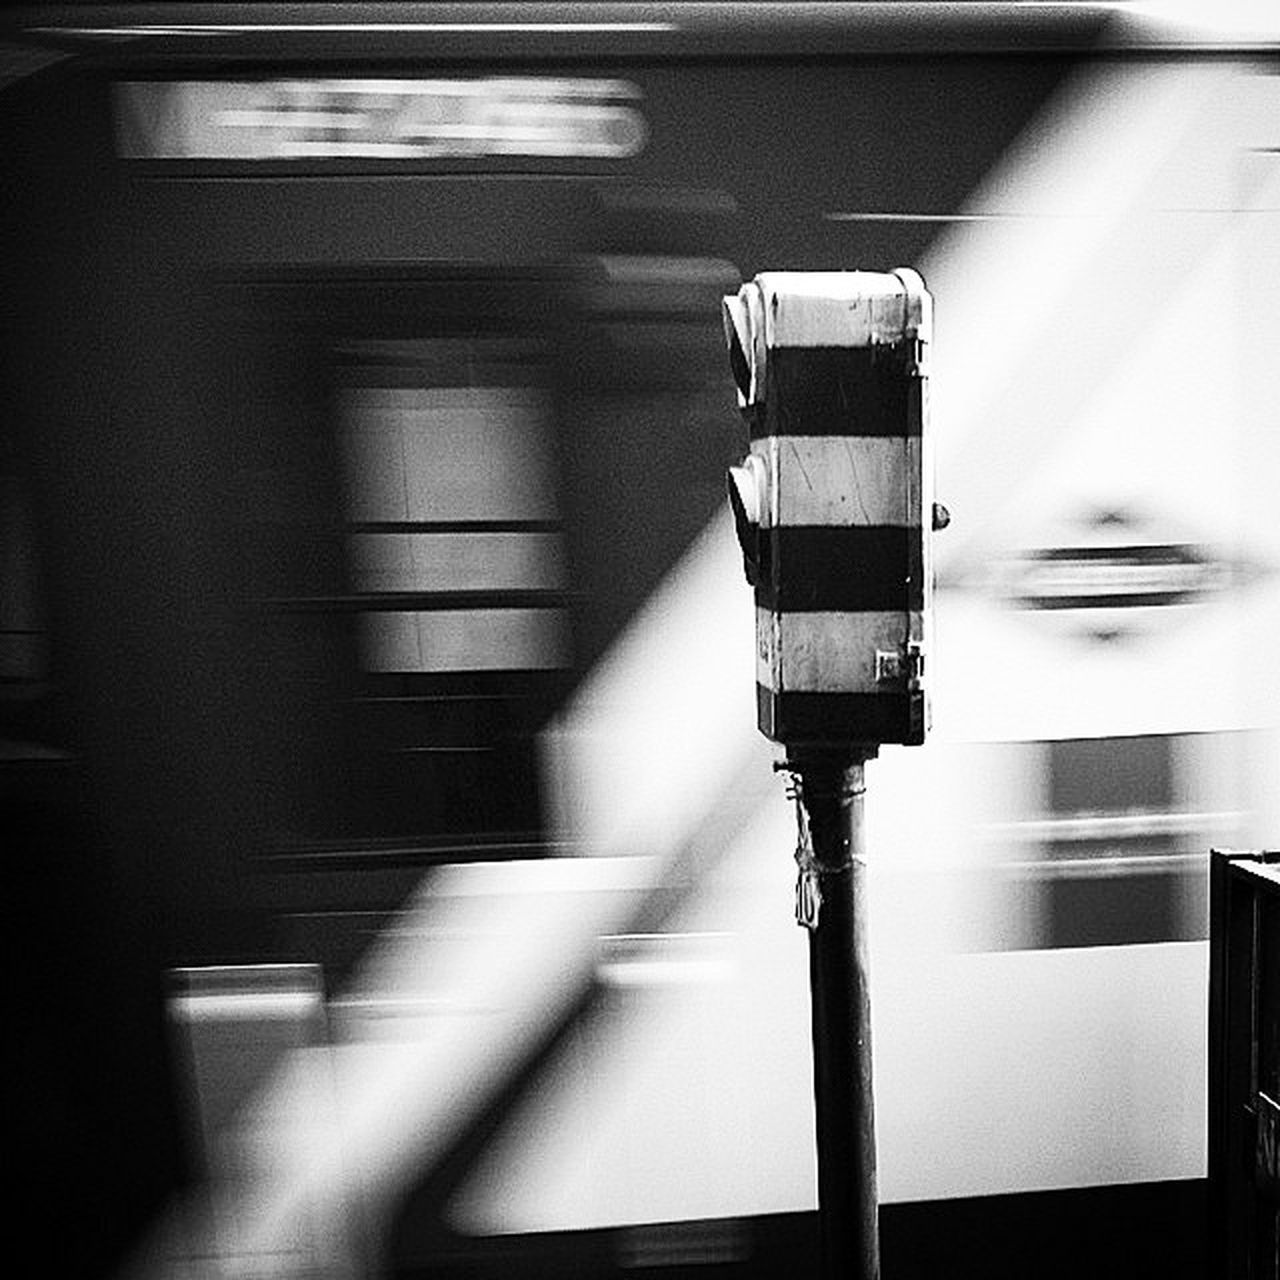 blurred motion, motion, speed, transportation, train - vehicle, indoors, mode of transport, one person, real people, day, technology, people